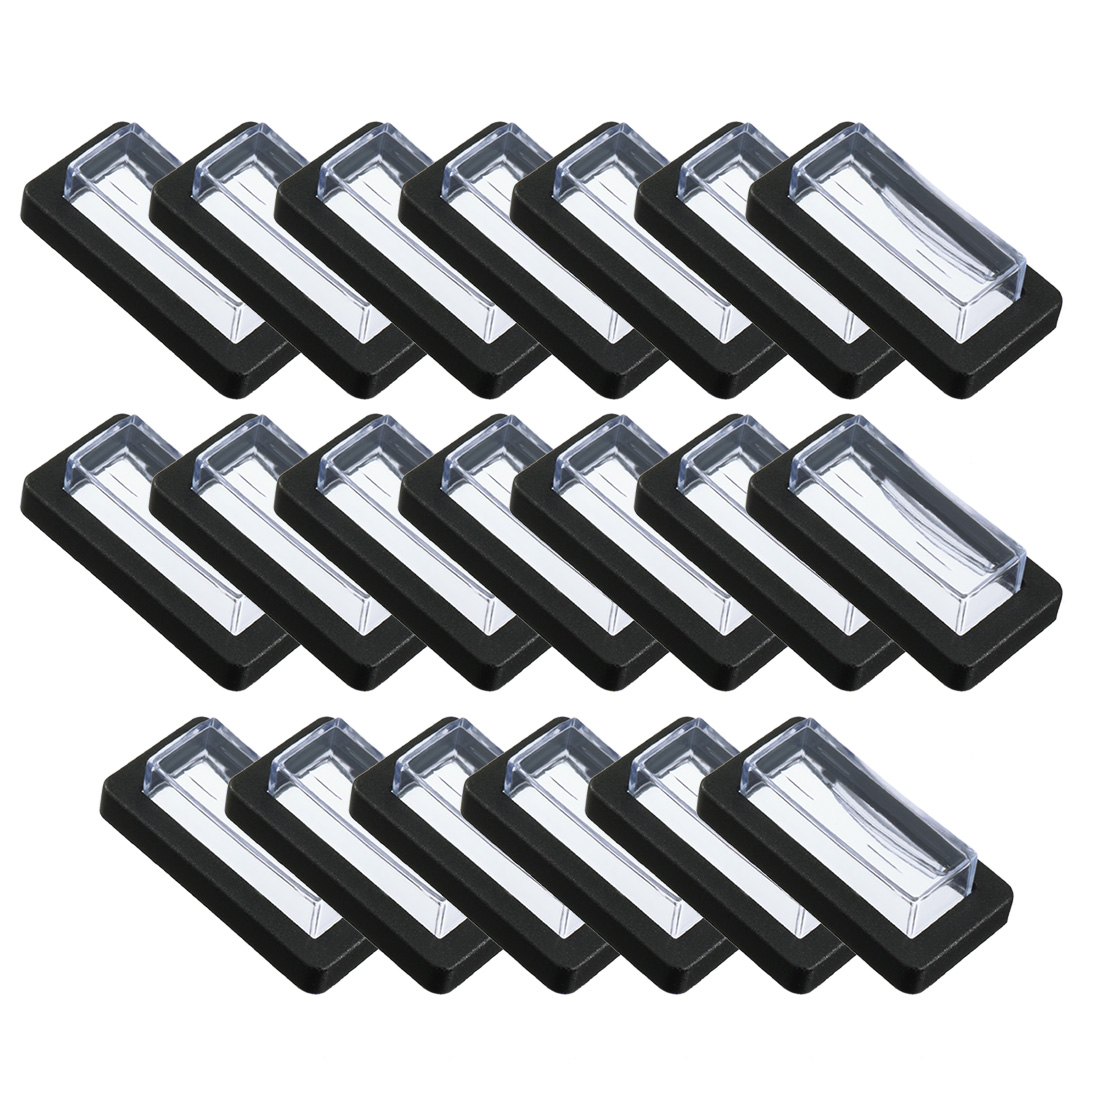 20 Pairs Clear Black Rectangle Splash Proof Switch Covers Caps Protectors